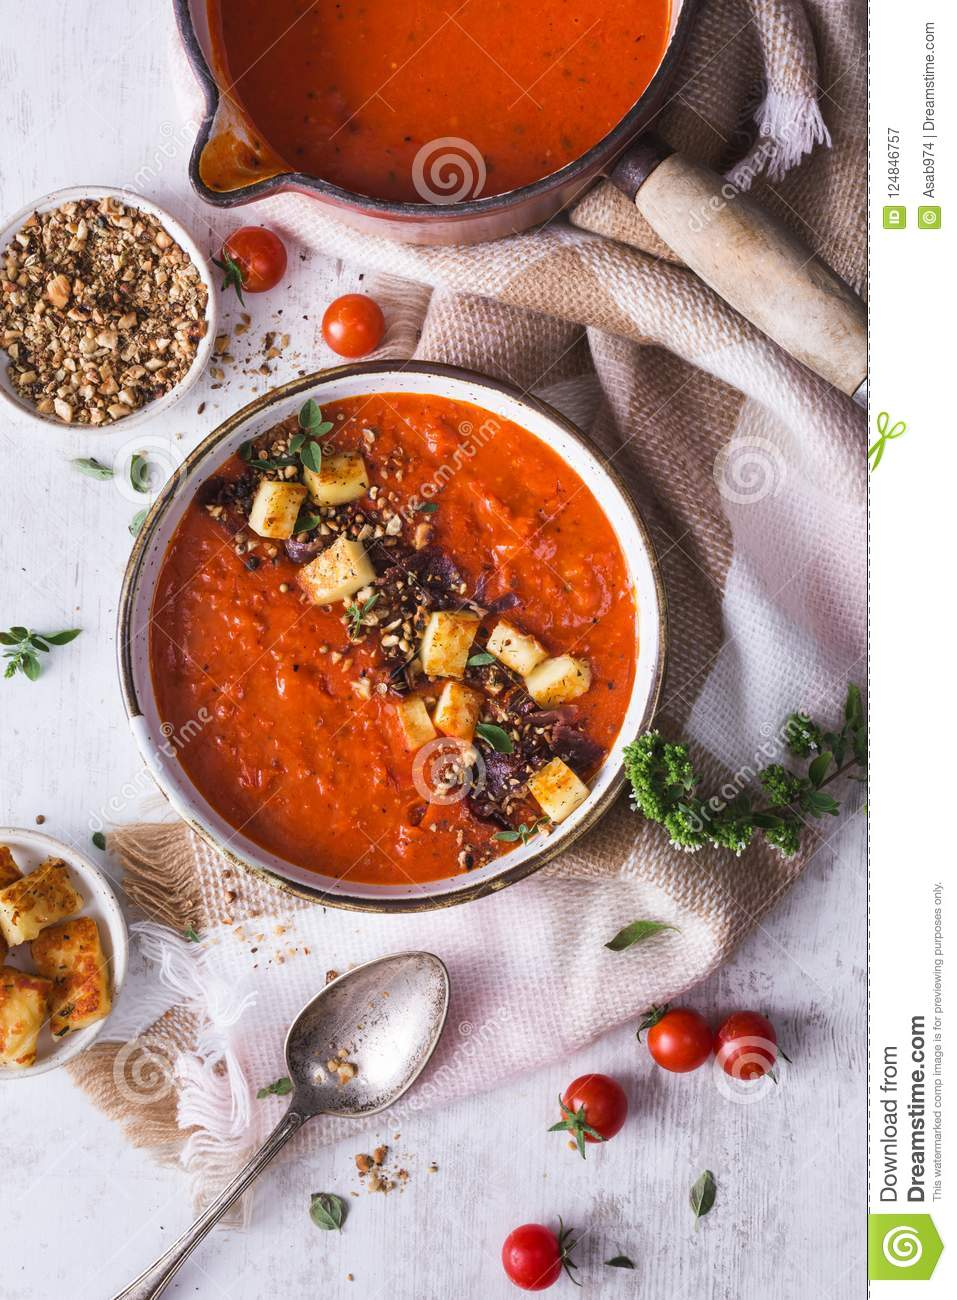 Tomatoes and Red Pepper Soup with Halloumi Chesse and Dukkah Spices